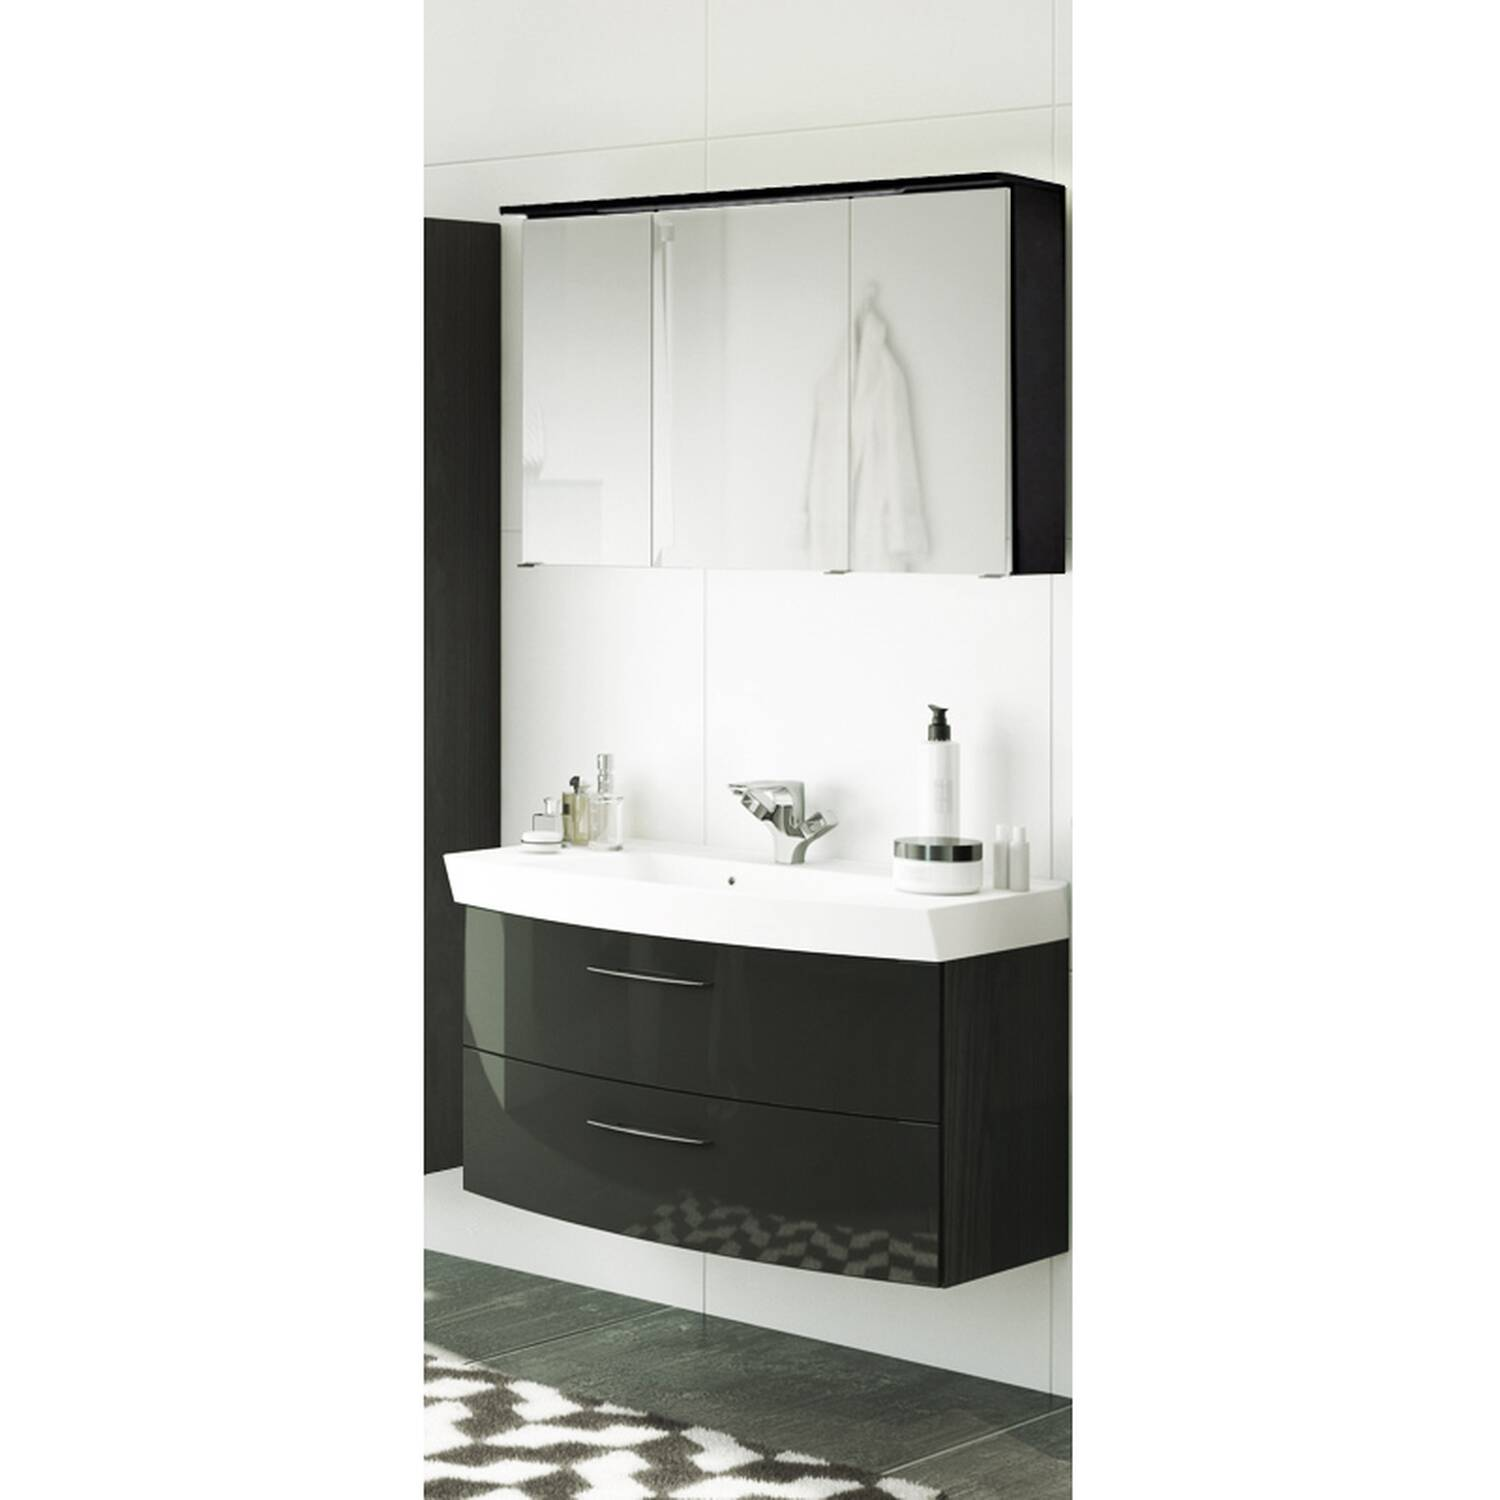 waschtisch spiegelschrank set florido 03 hochgl. Black Bedroom Furniture Sets. Home Design Ideas